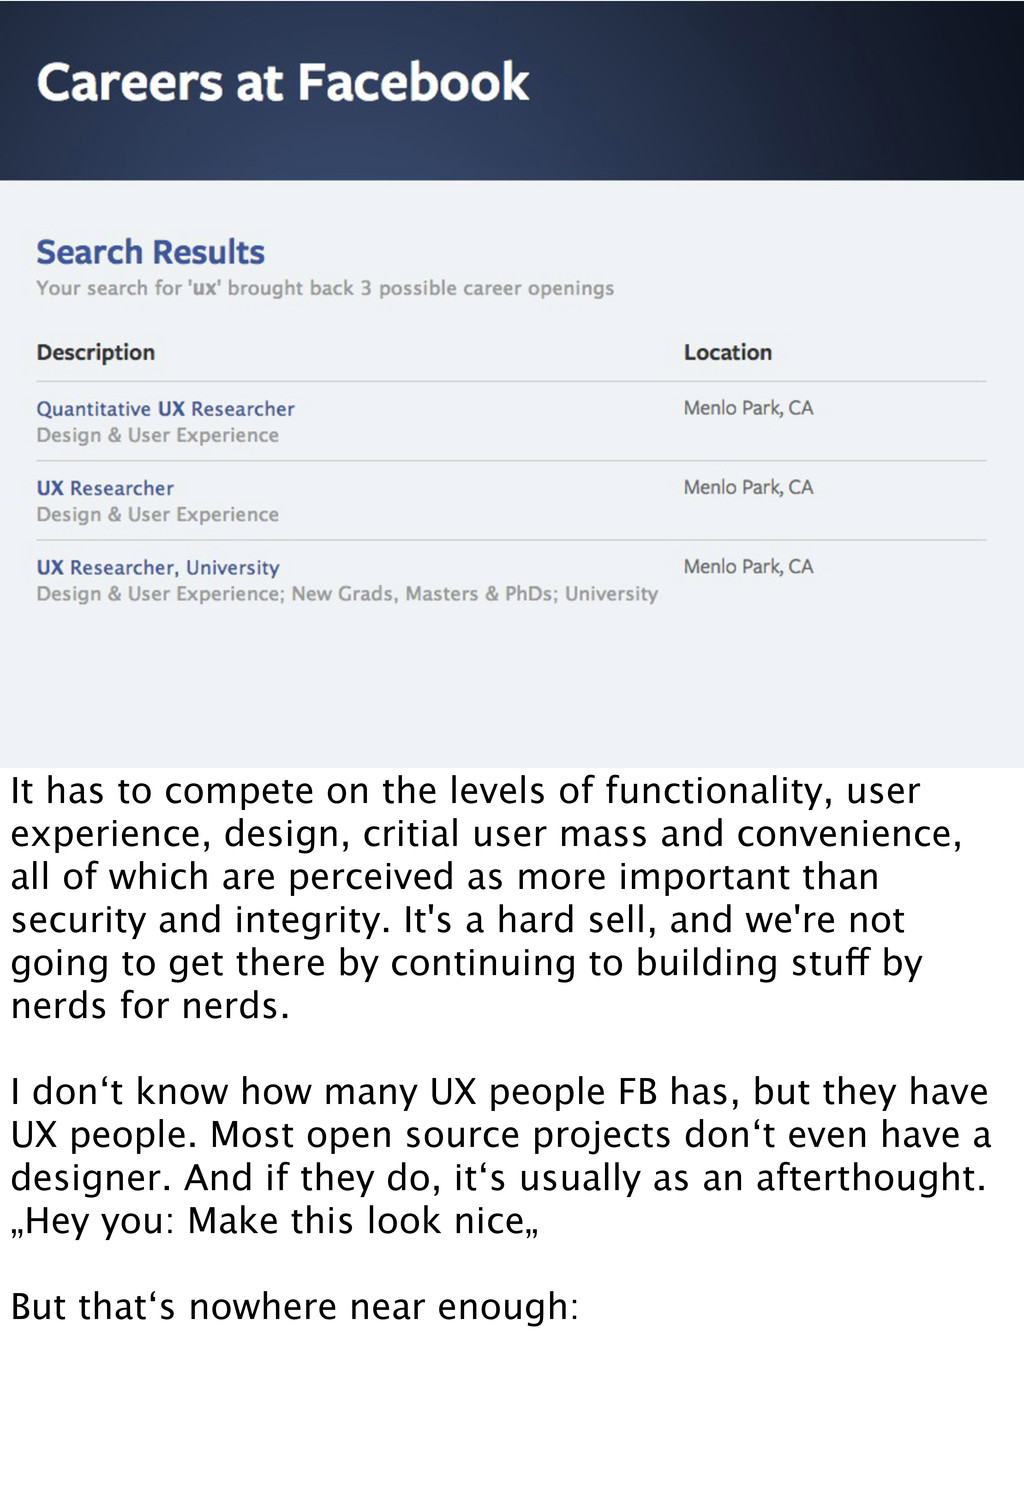 It has to compete on the levels of functionalit...